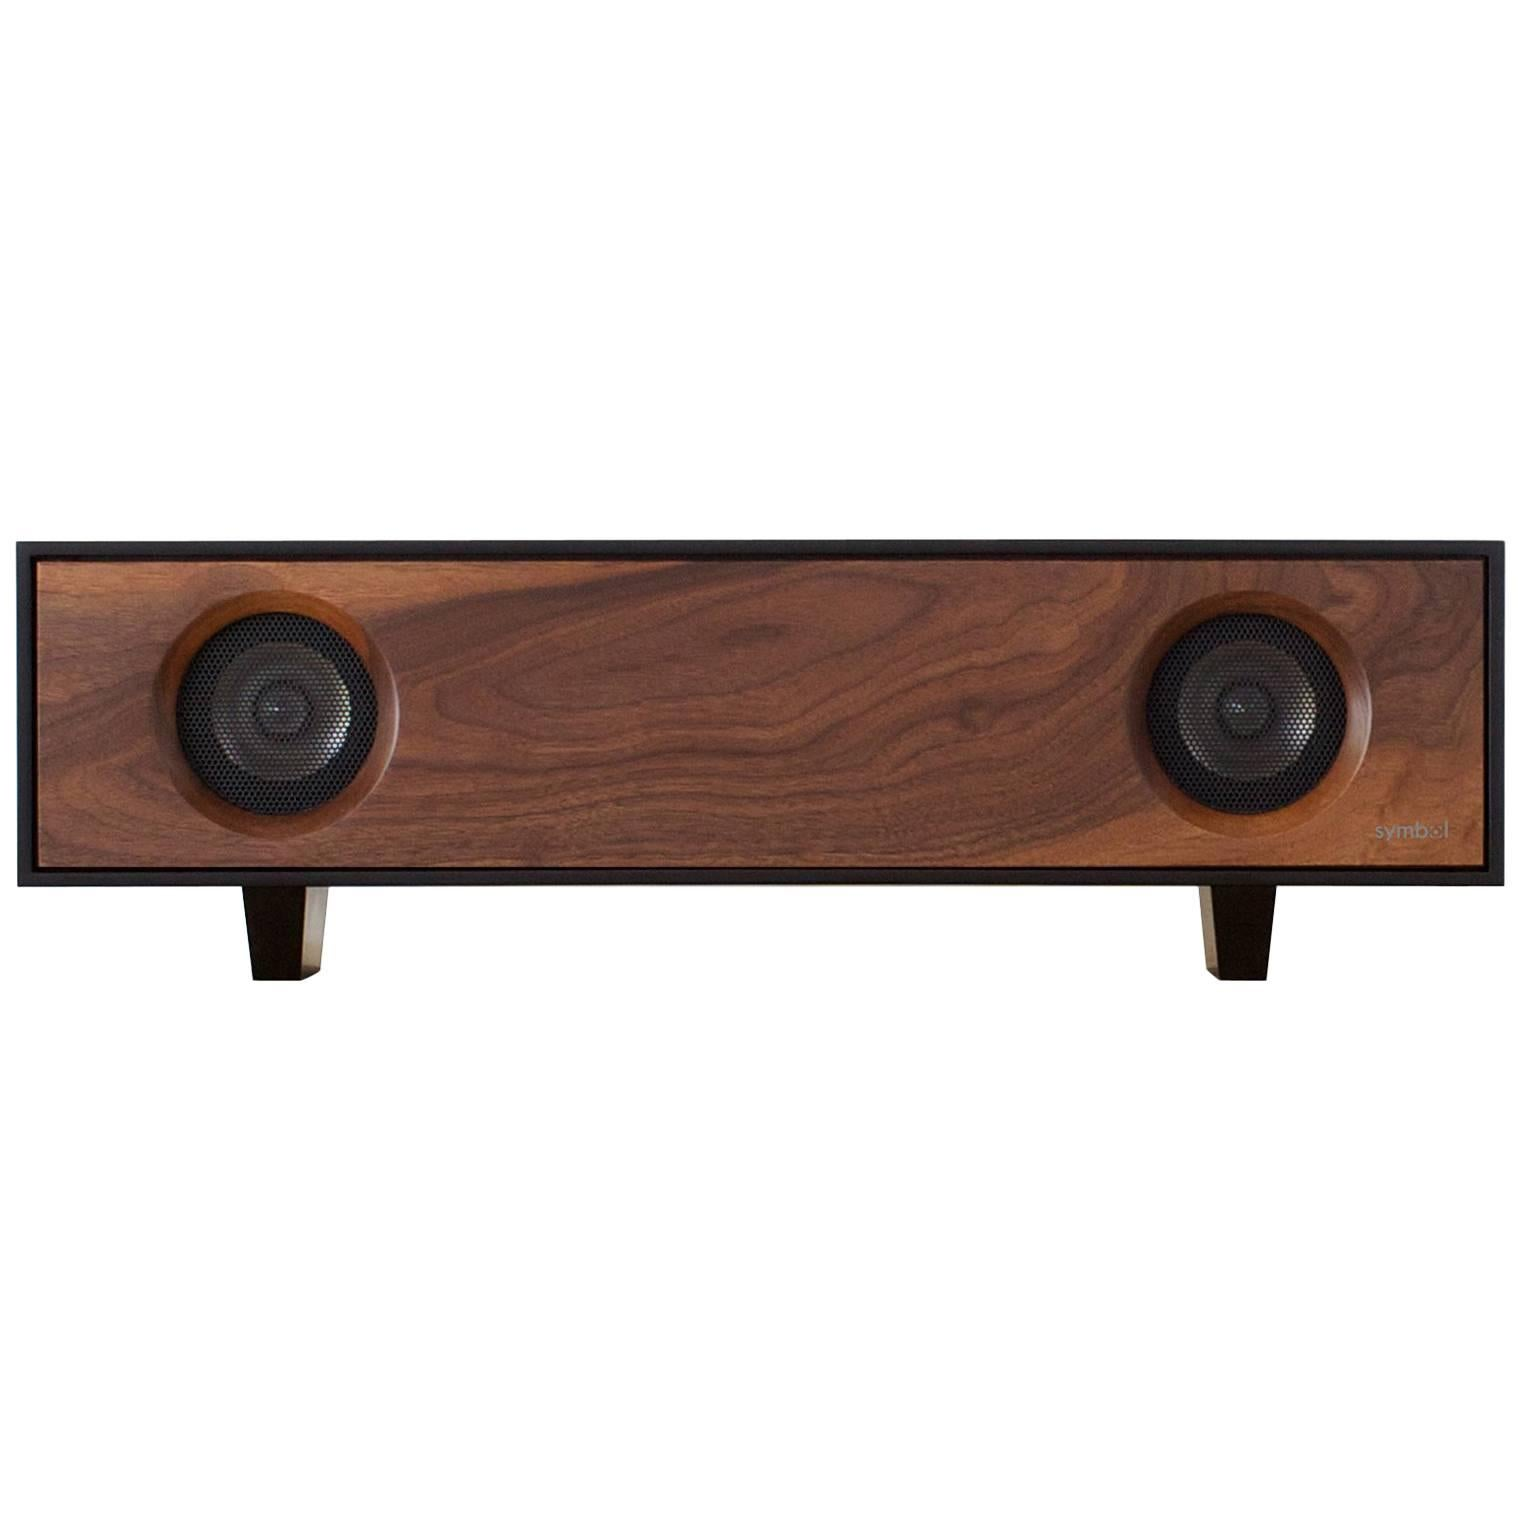 Tabletop hifi speaker natural walnut cabinet with natural walnut speaker front for sale at 1stdibs